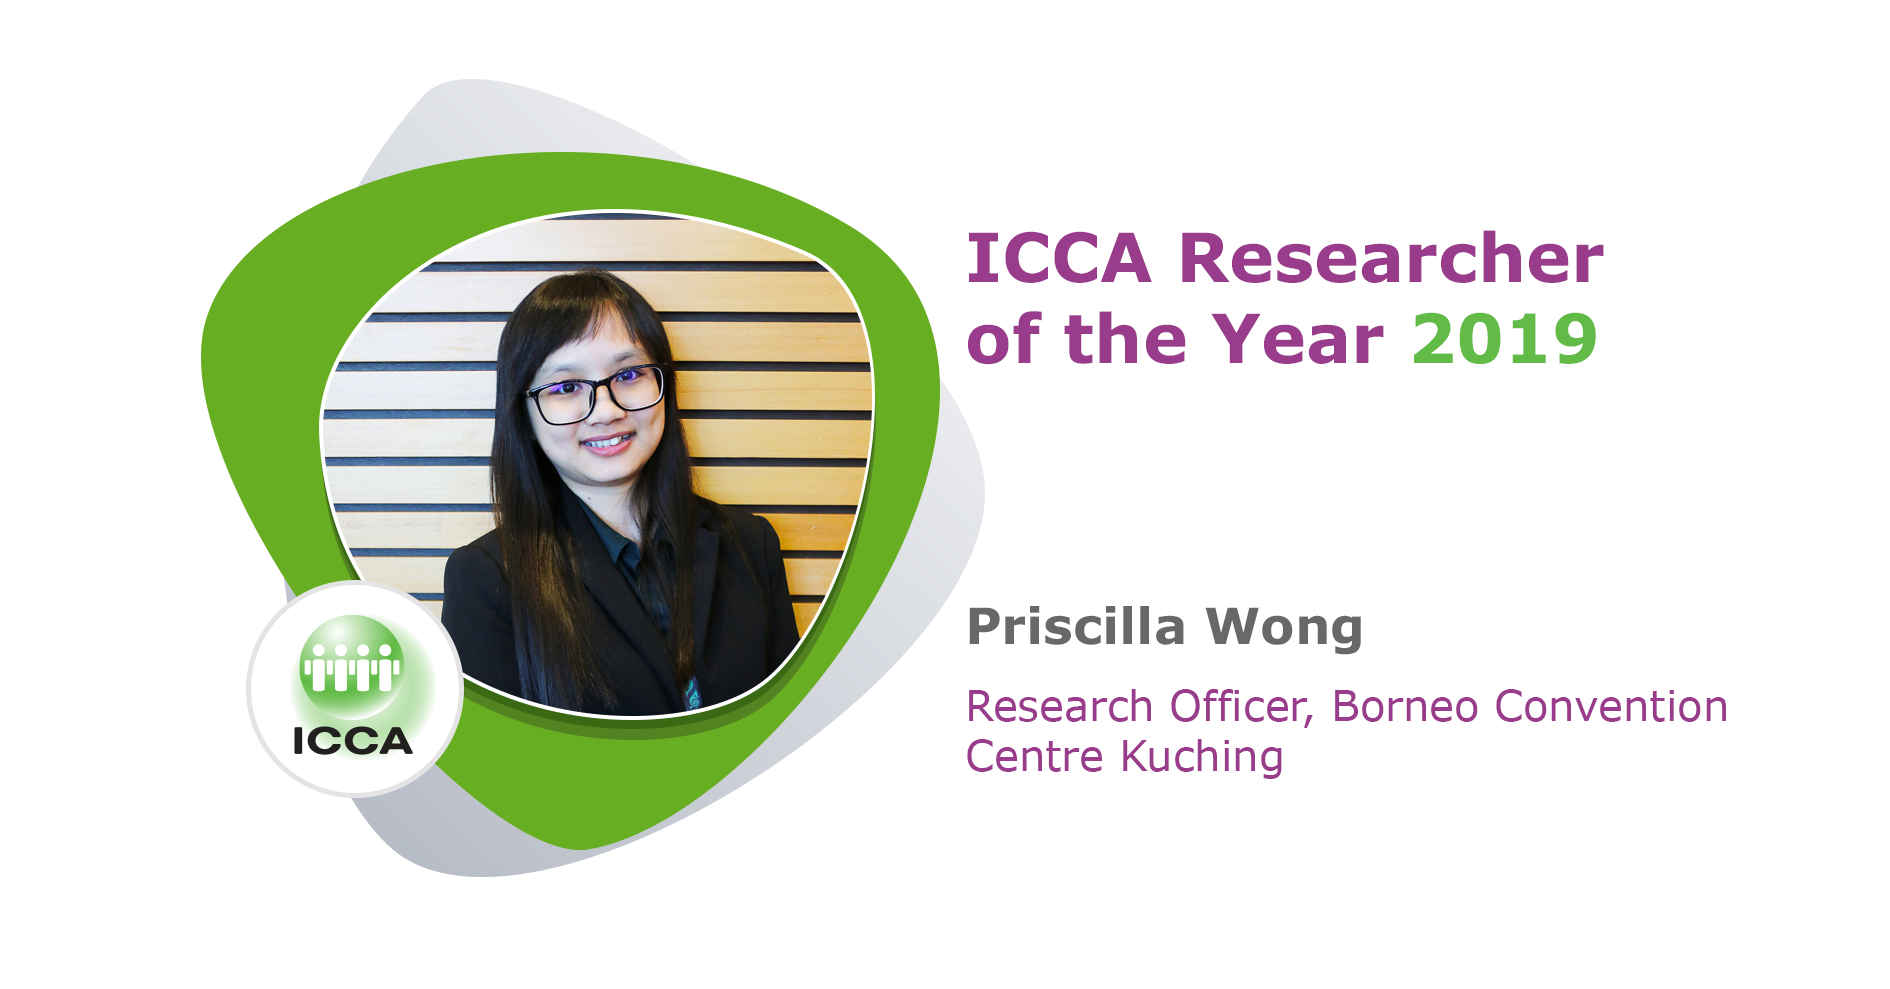 ICCA Researcher of the Year - Who made the most updates in 2019?